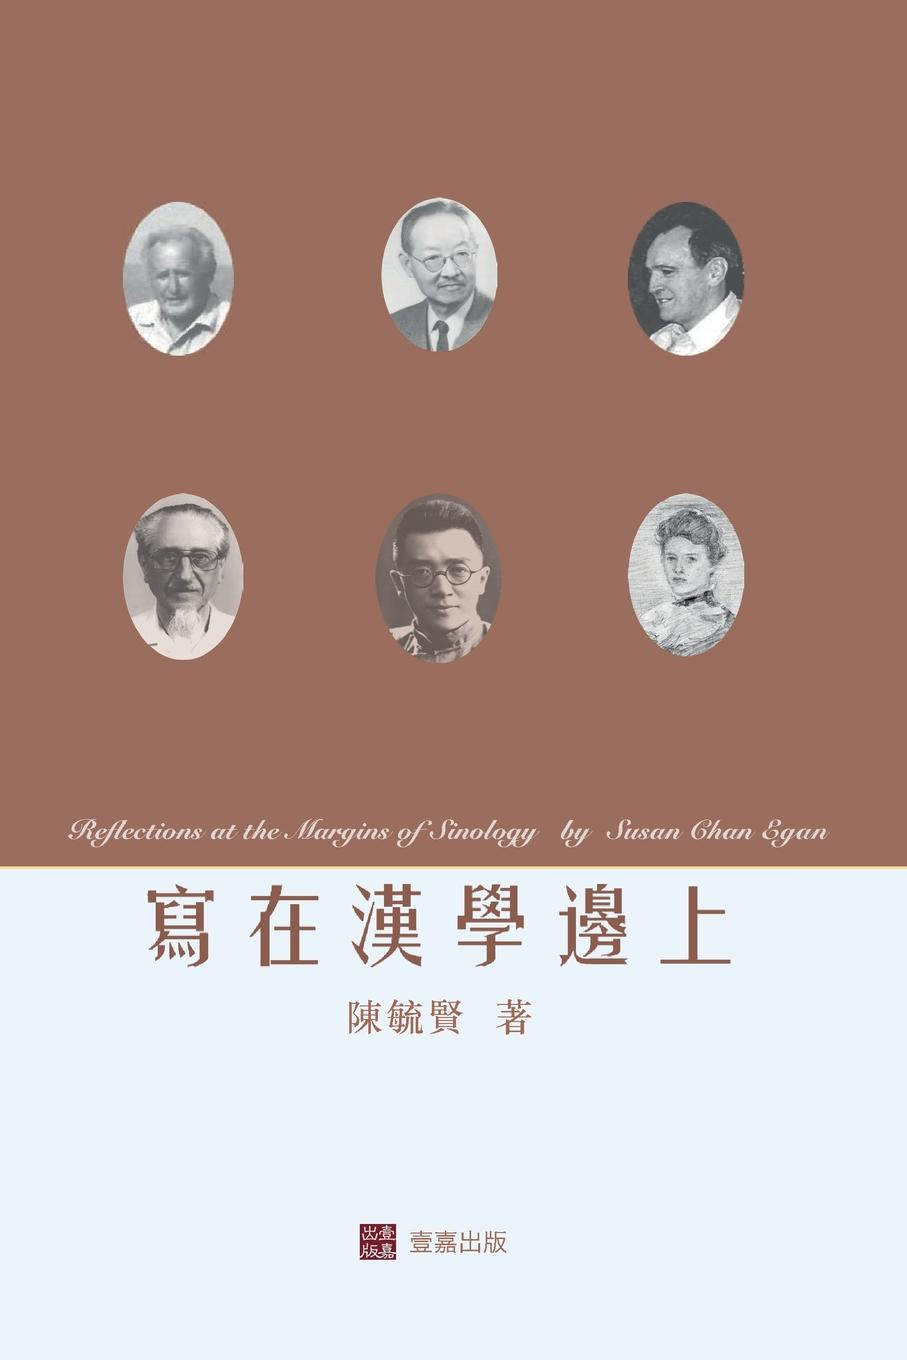 毓賢 陳 ......Reflections at the Margins of Sinology (Chinese edition) 赚钱更要赚人生